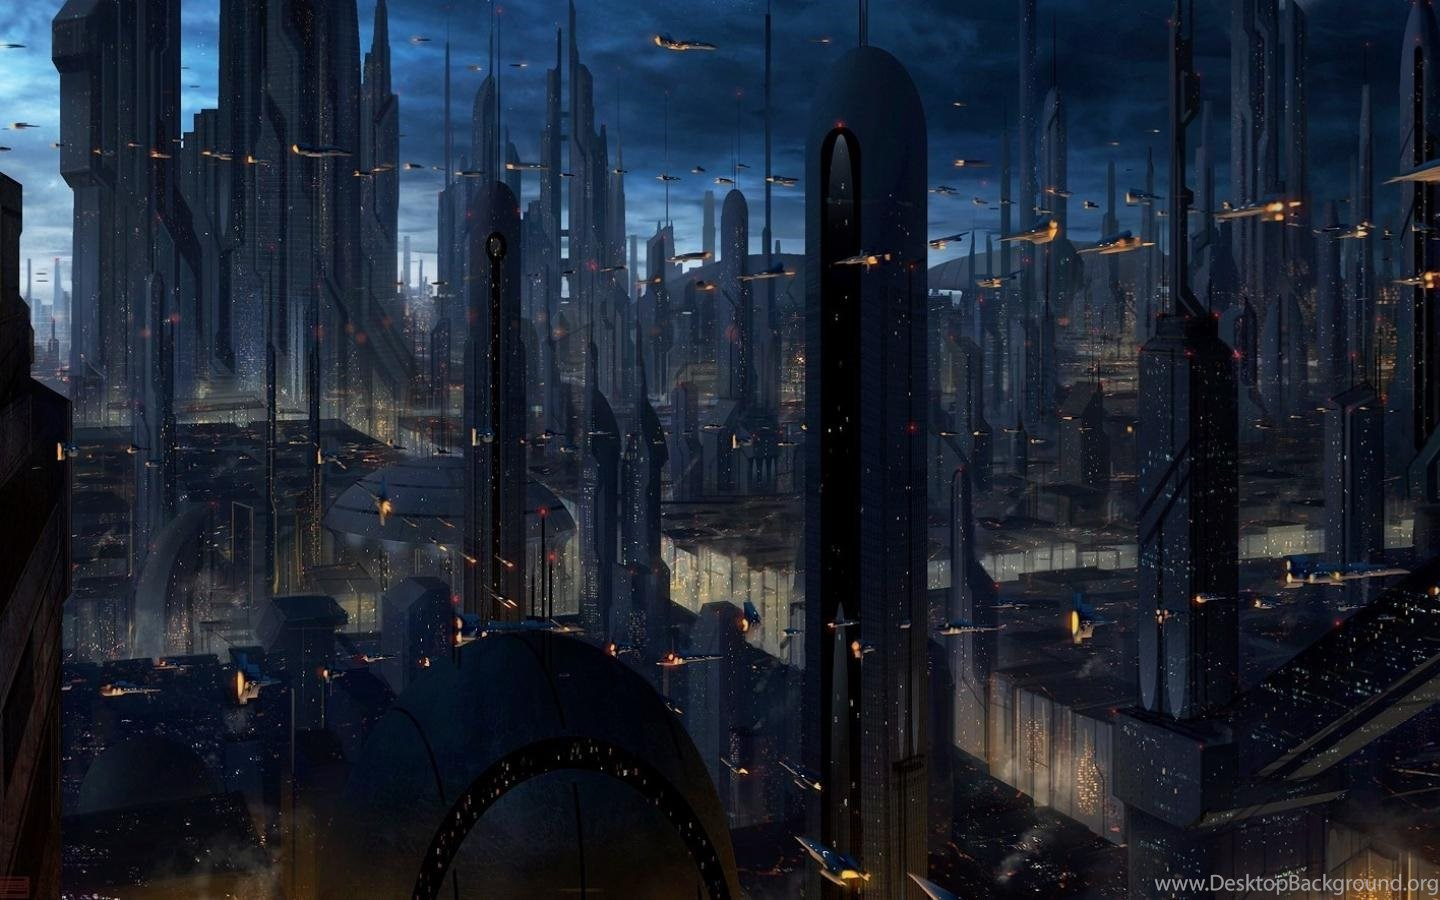 Coruscant Star Wars Artwork Buildings Cityscapes Wallpapers Desktop Background